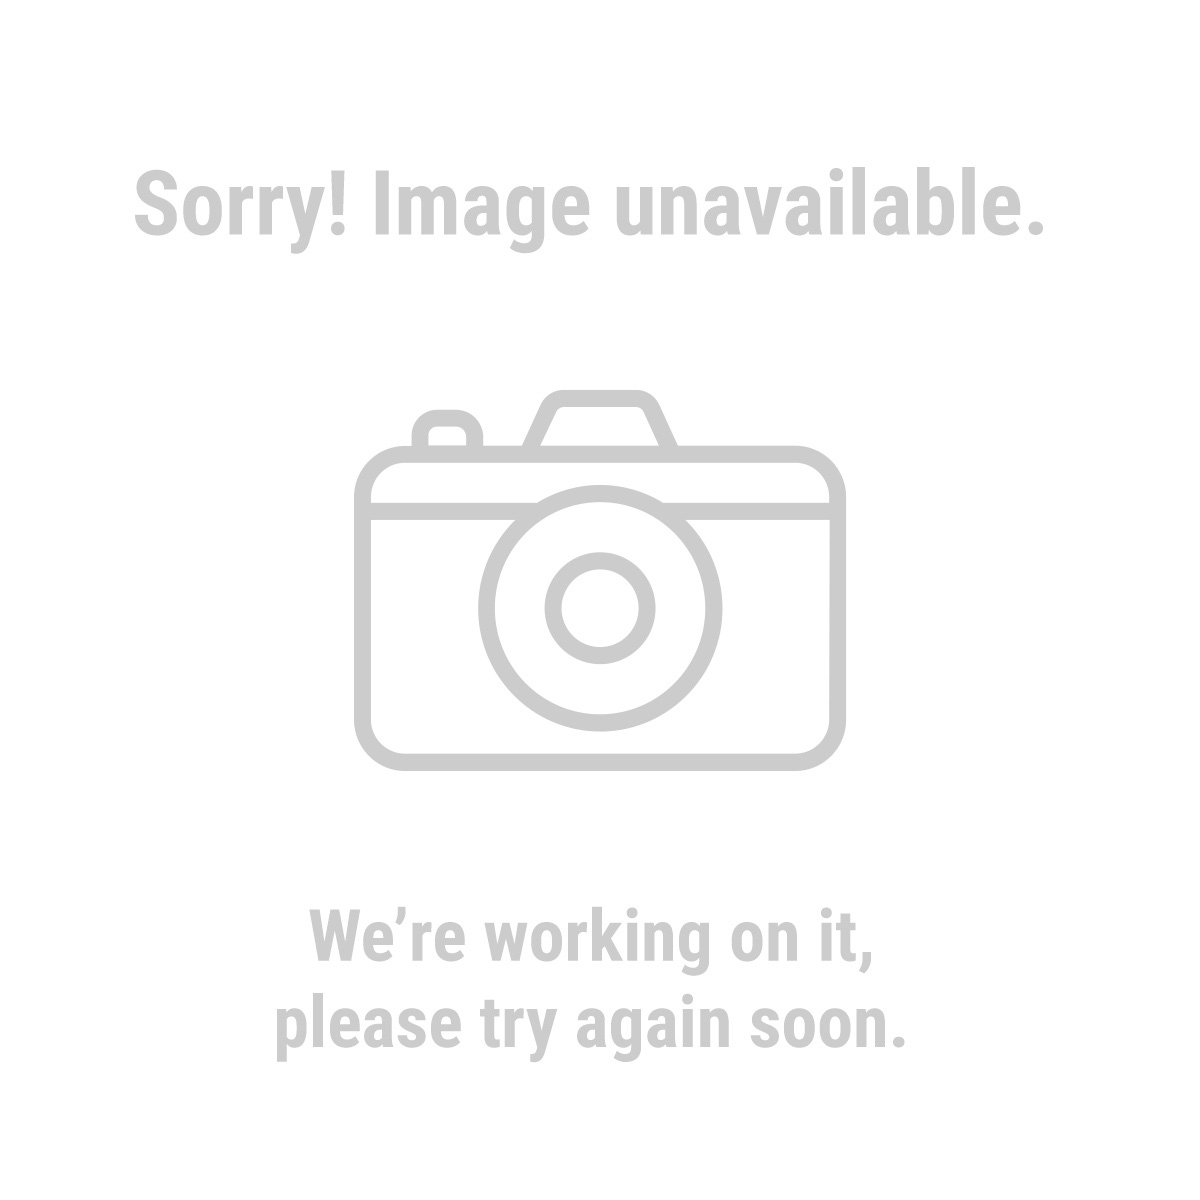 HFT® 69184 9 ft. 4 in. x 19 ft. 6 in. All Purpose Weather Resistant Tarp